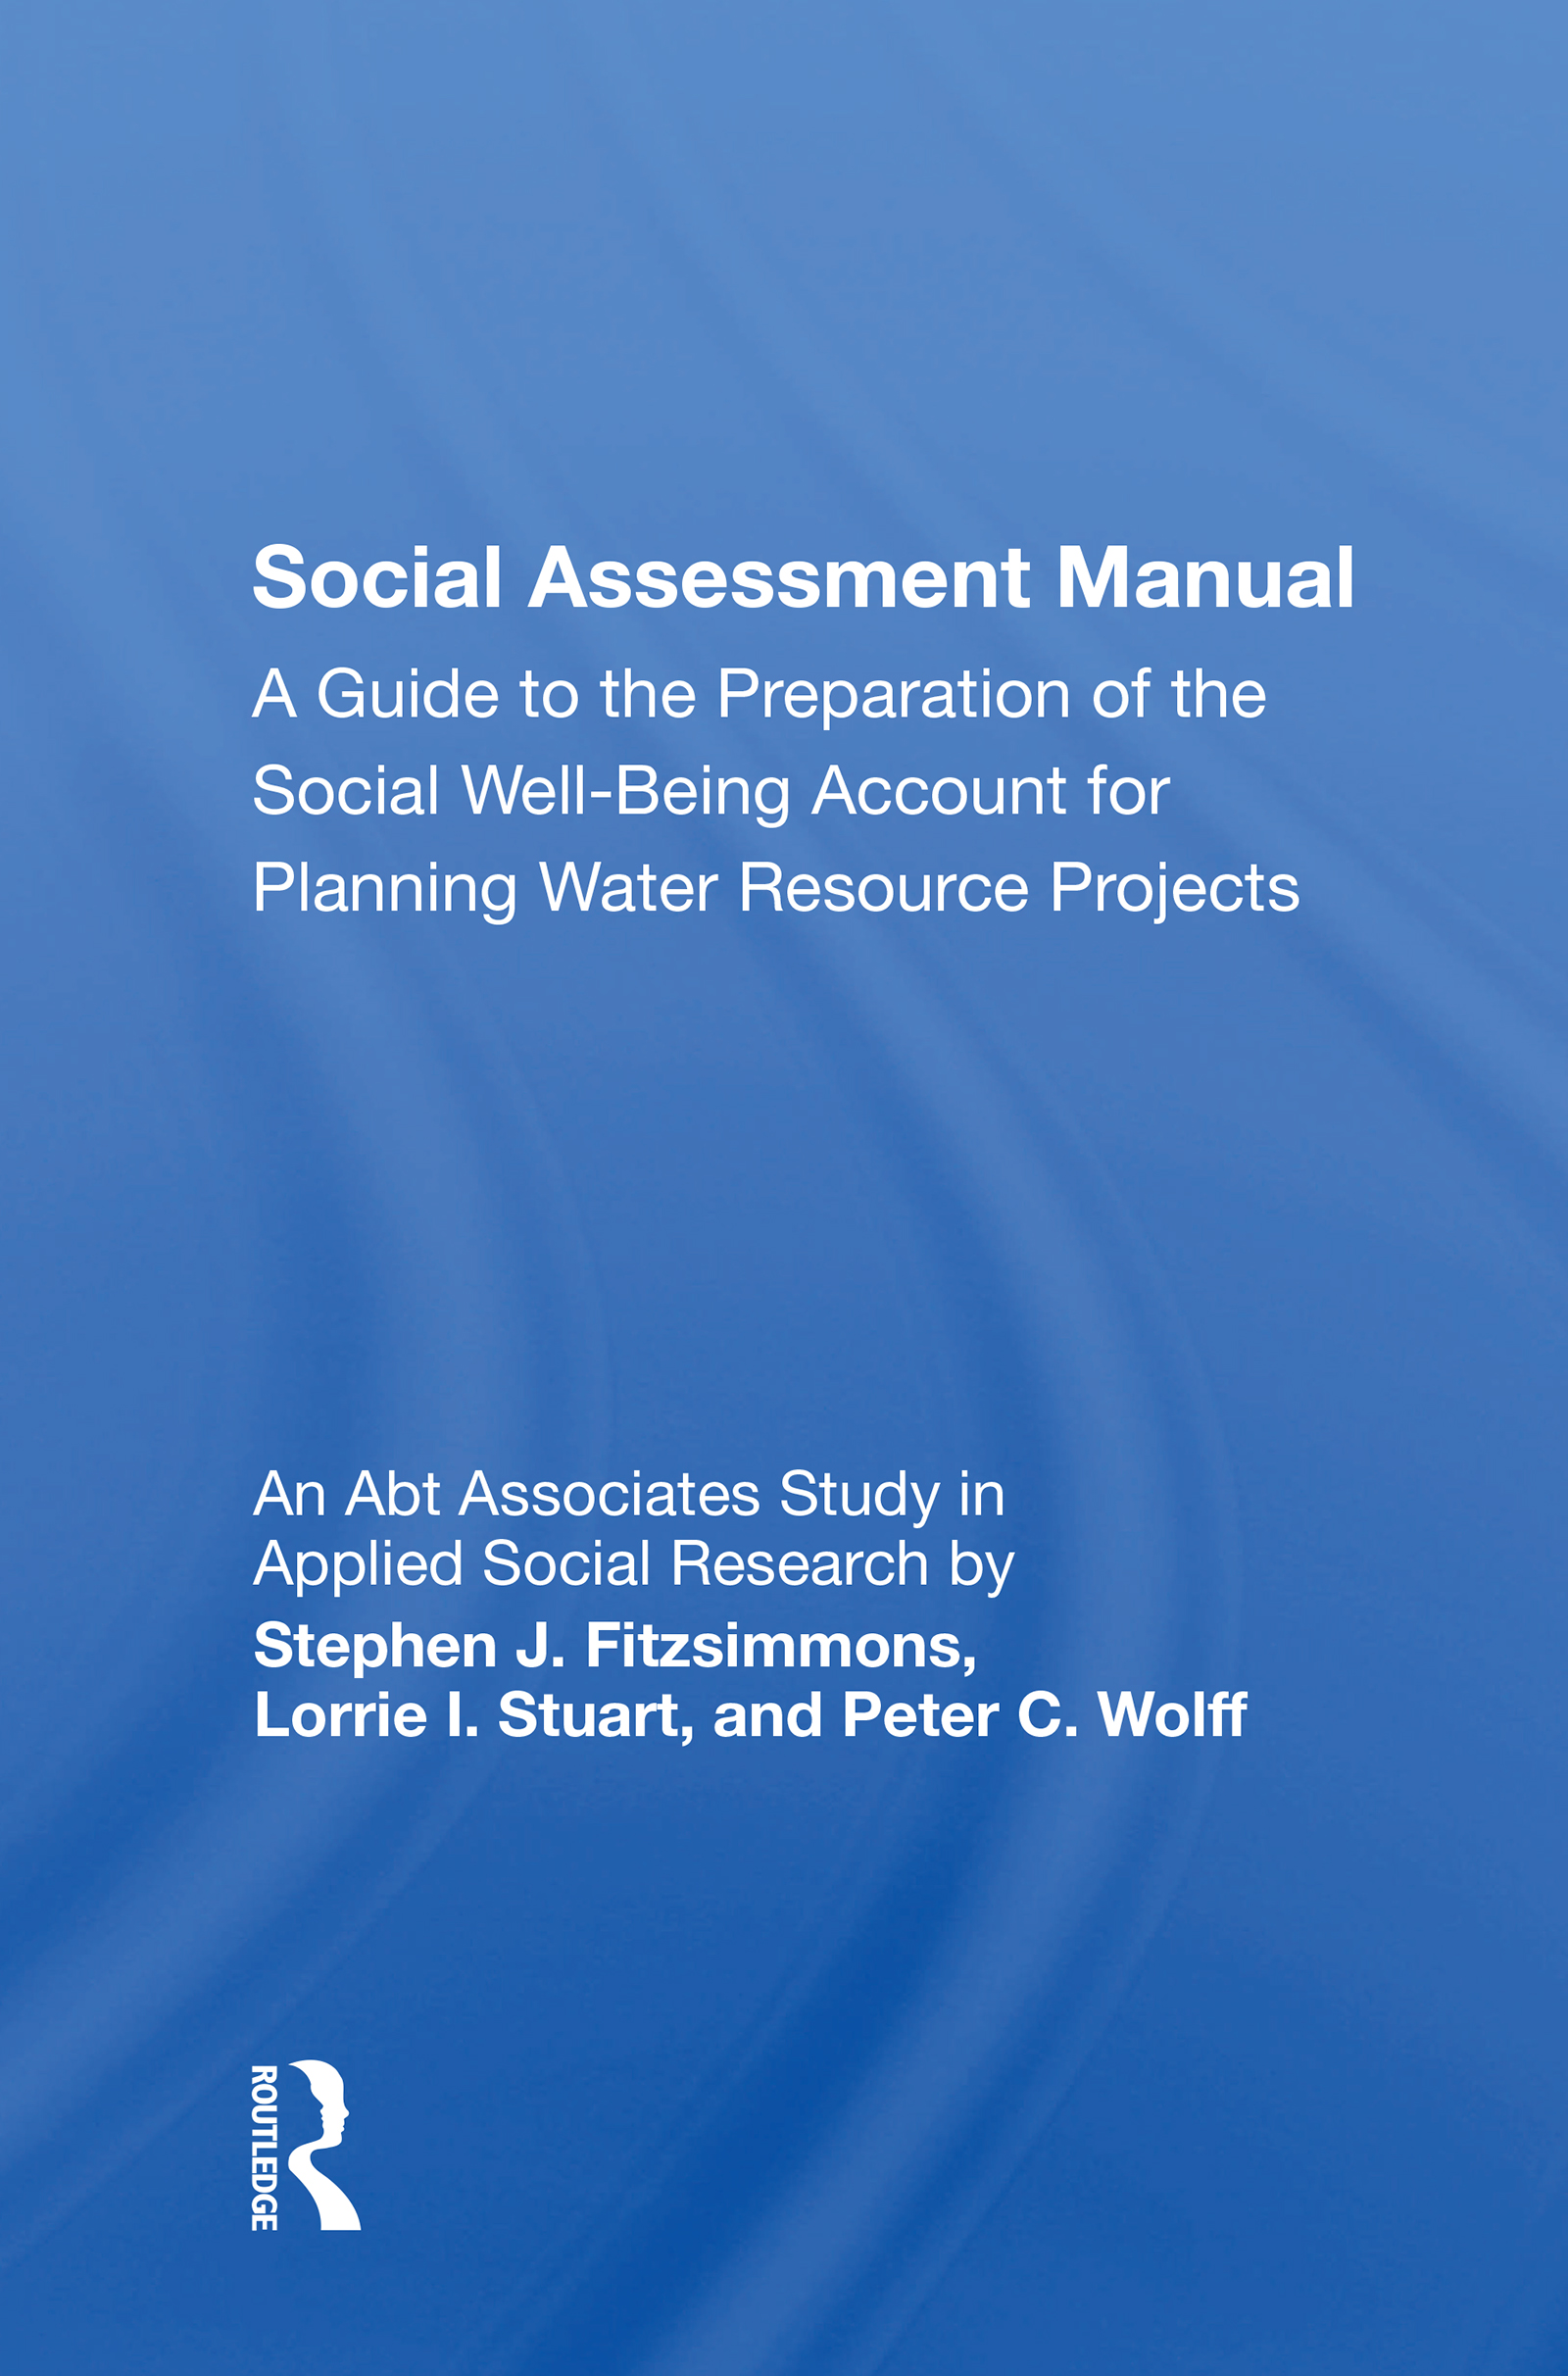 Organizing the Preparation of the Social Assessment